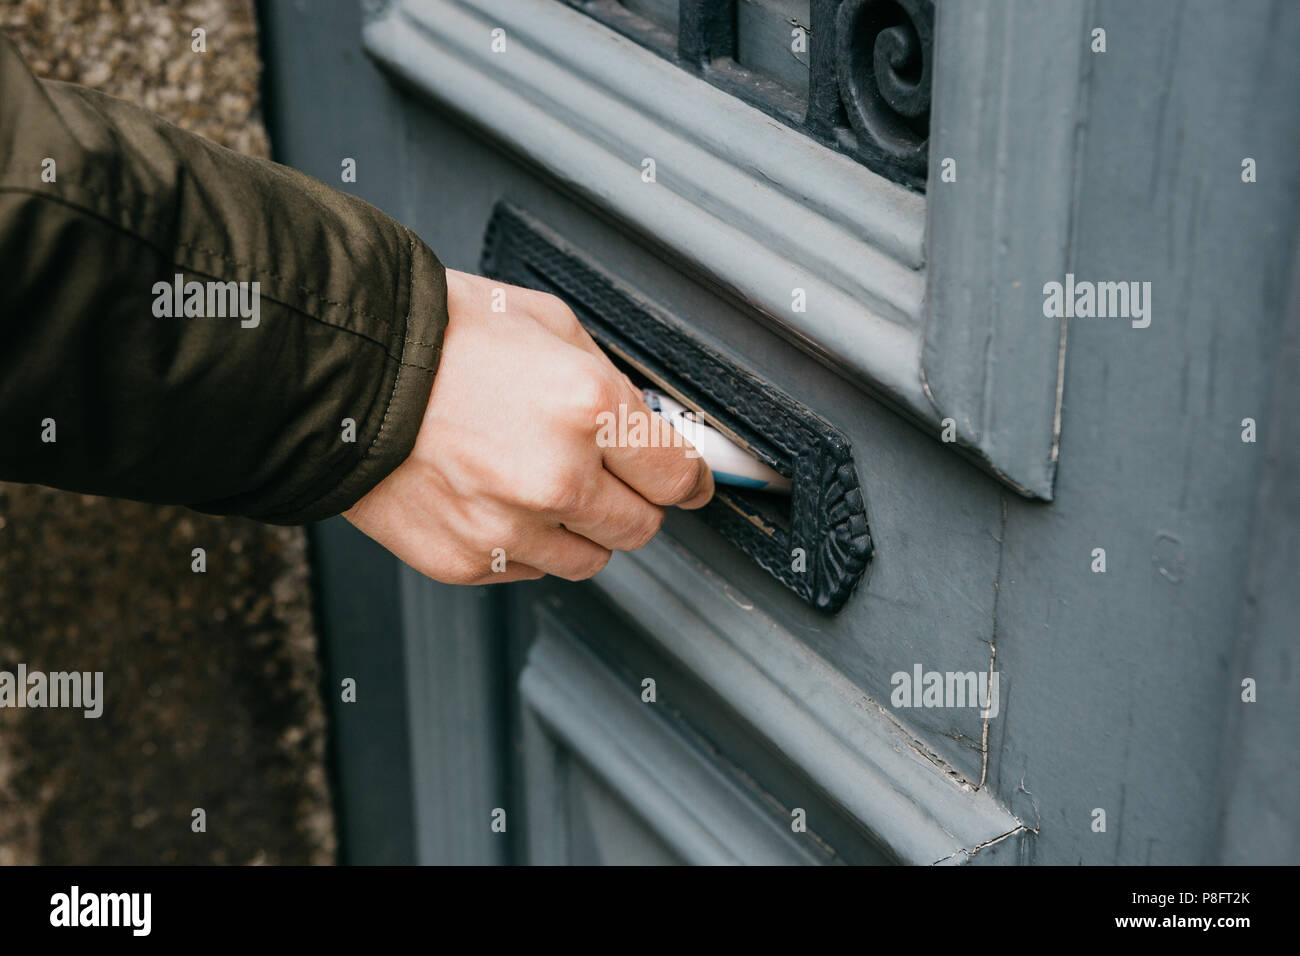 mailing a letter stock photos mailing a letter stock images alamy